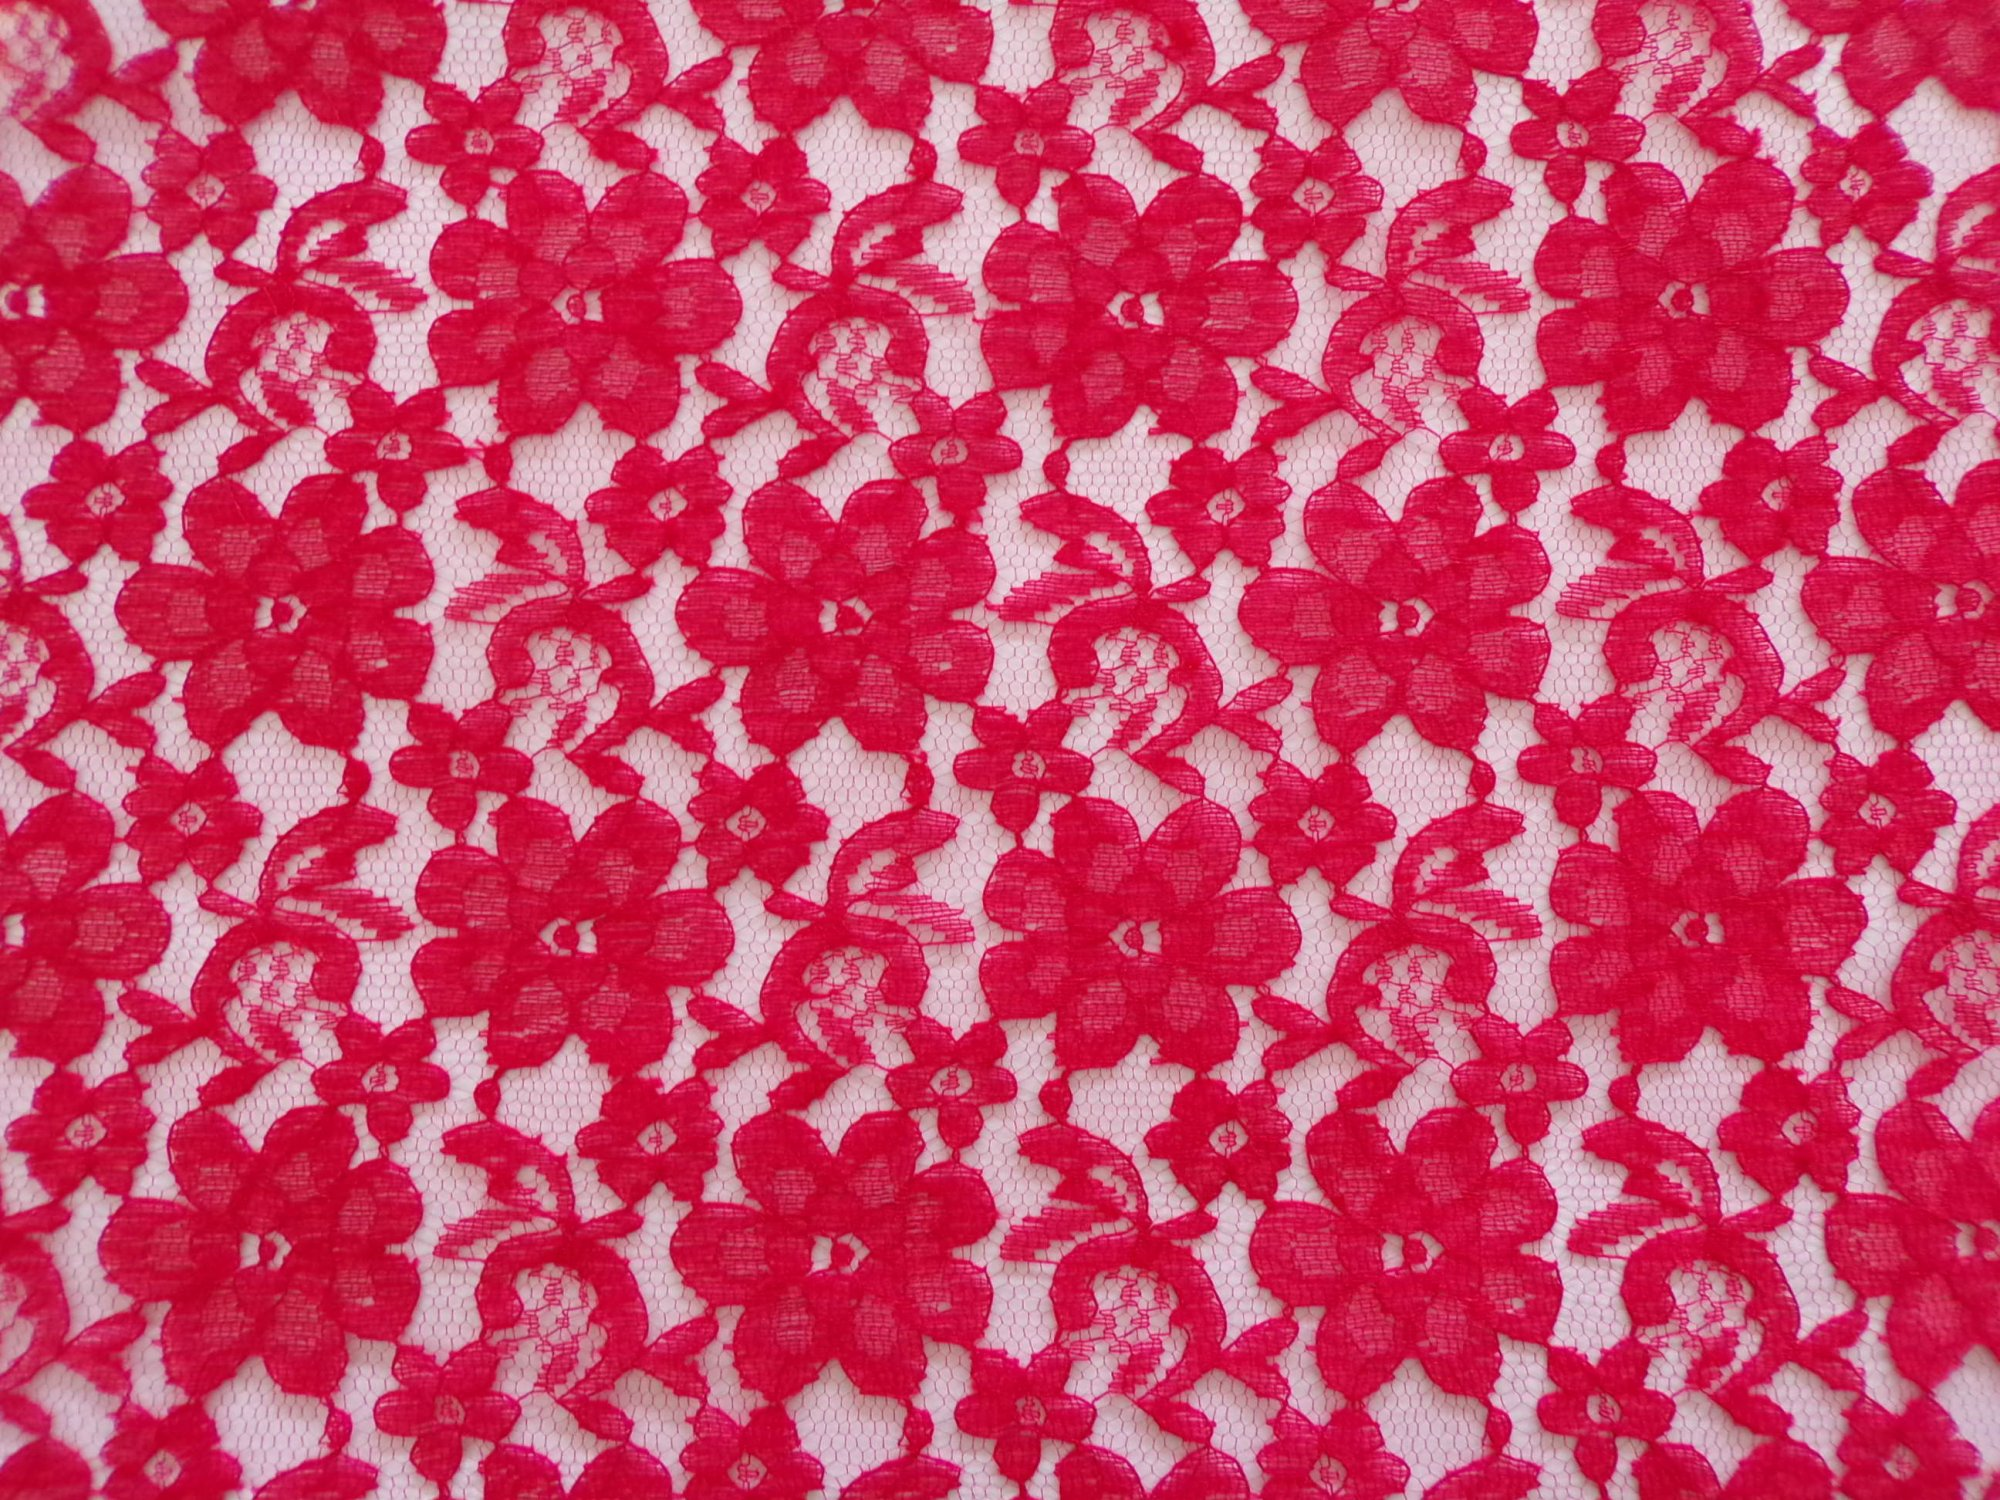 Raschel Lace - Red